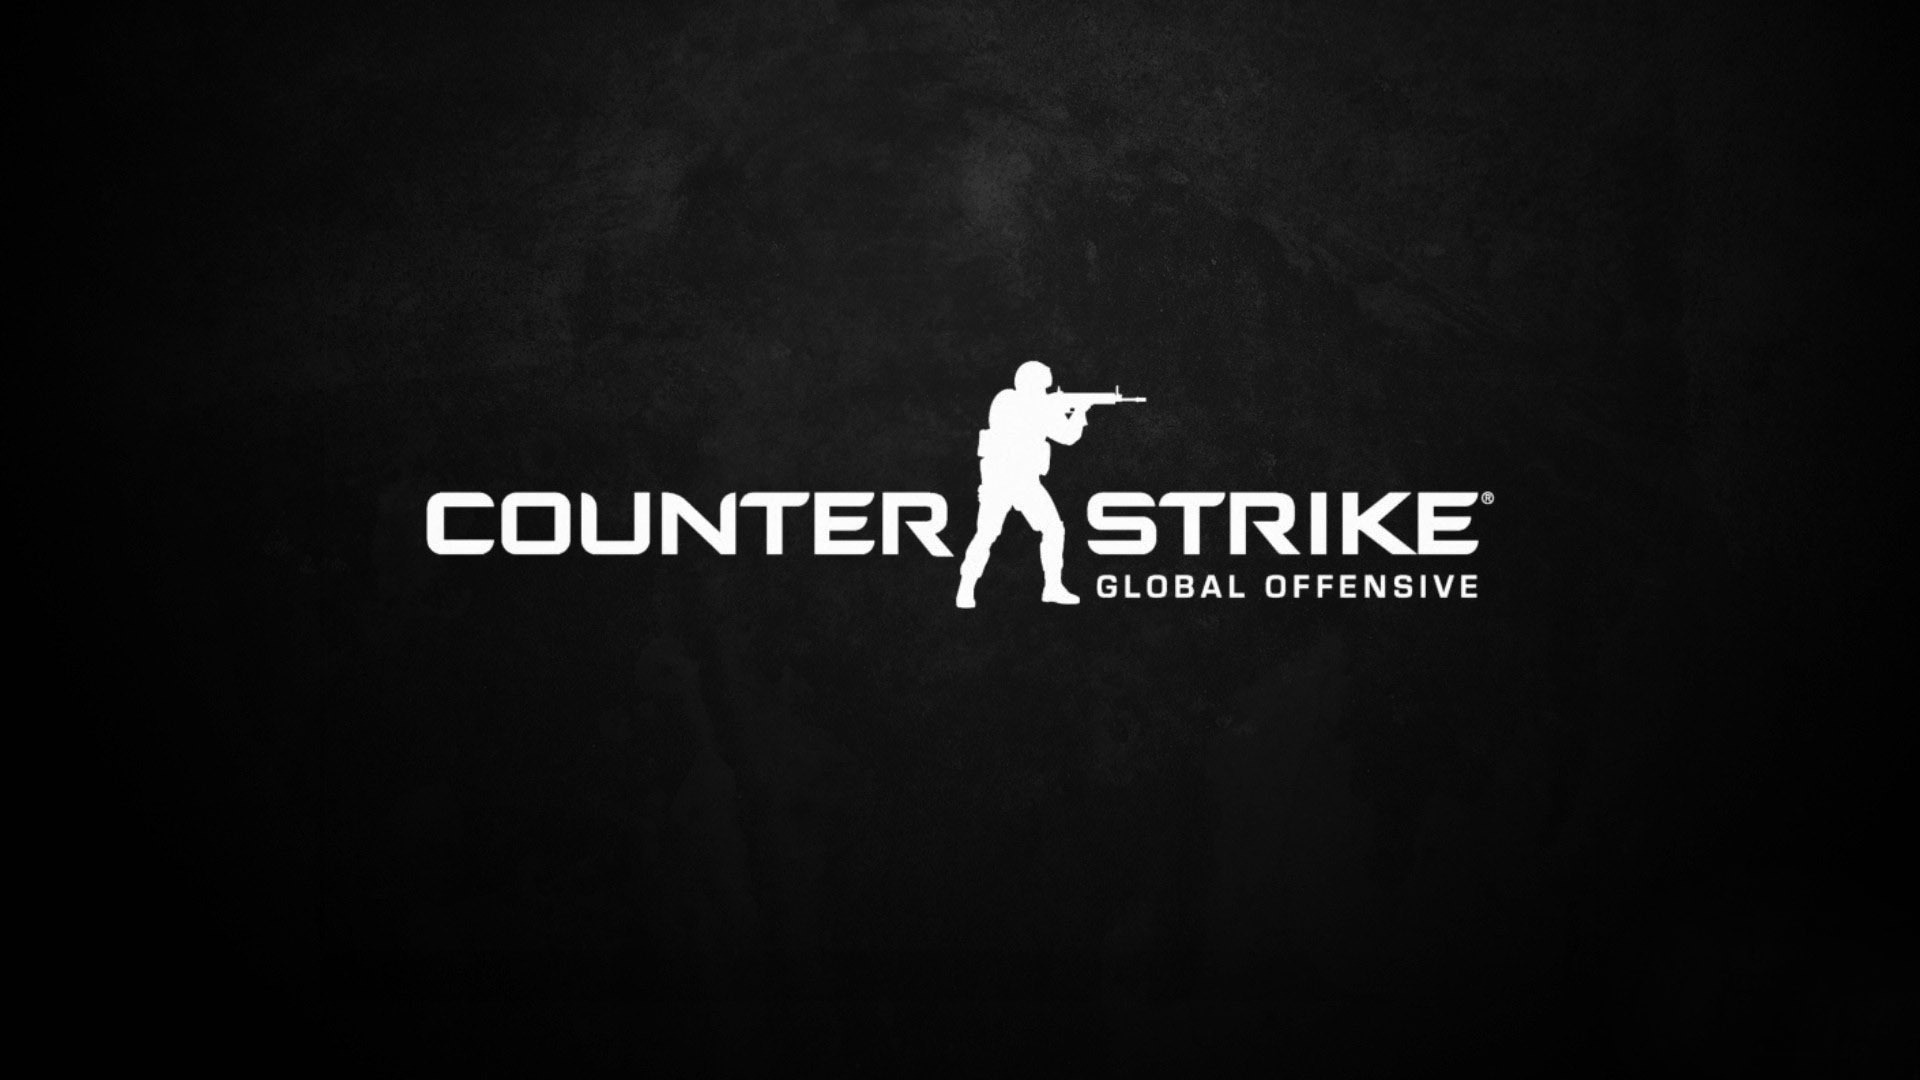 Counter Strike Wallpapers, Pictures, Images Counter Strike Wallpaper Hd